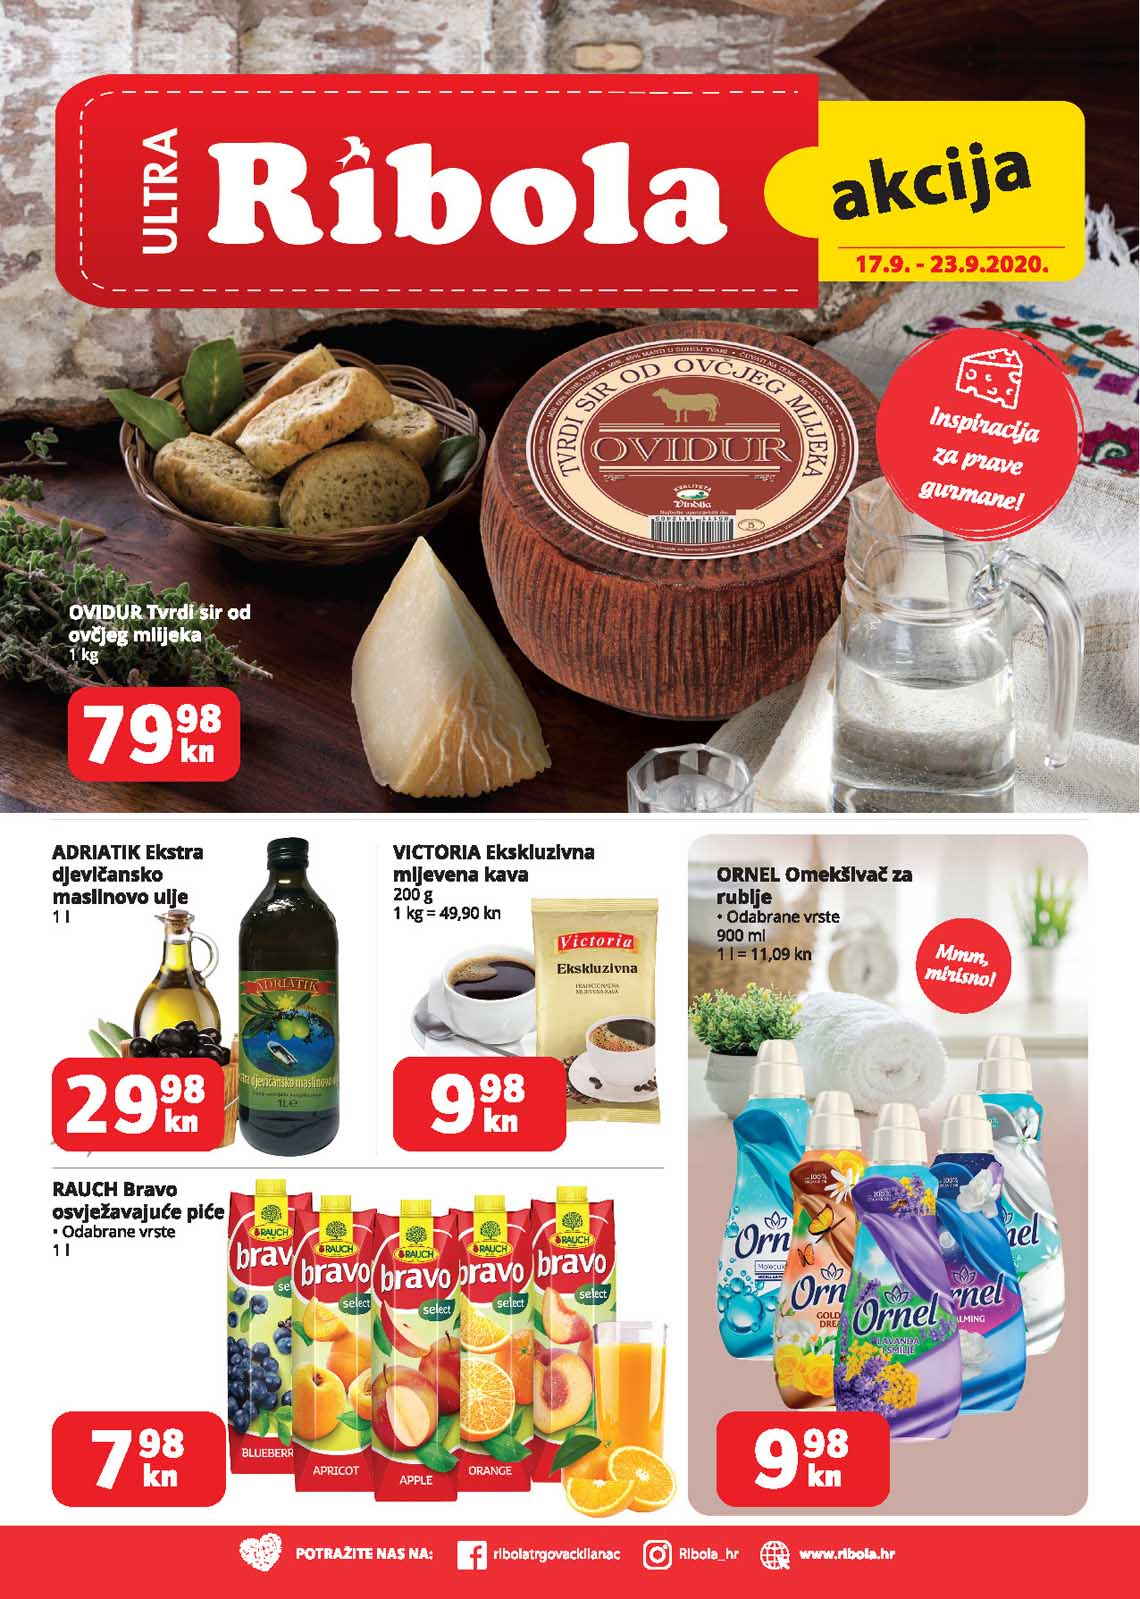 ULTRA GROS  - RIBOLA  KATALOG  - Akcija do 23.09.2020.